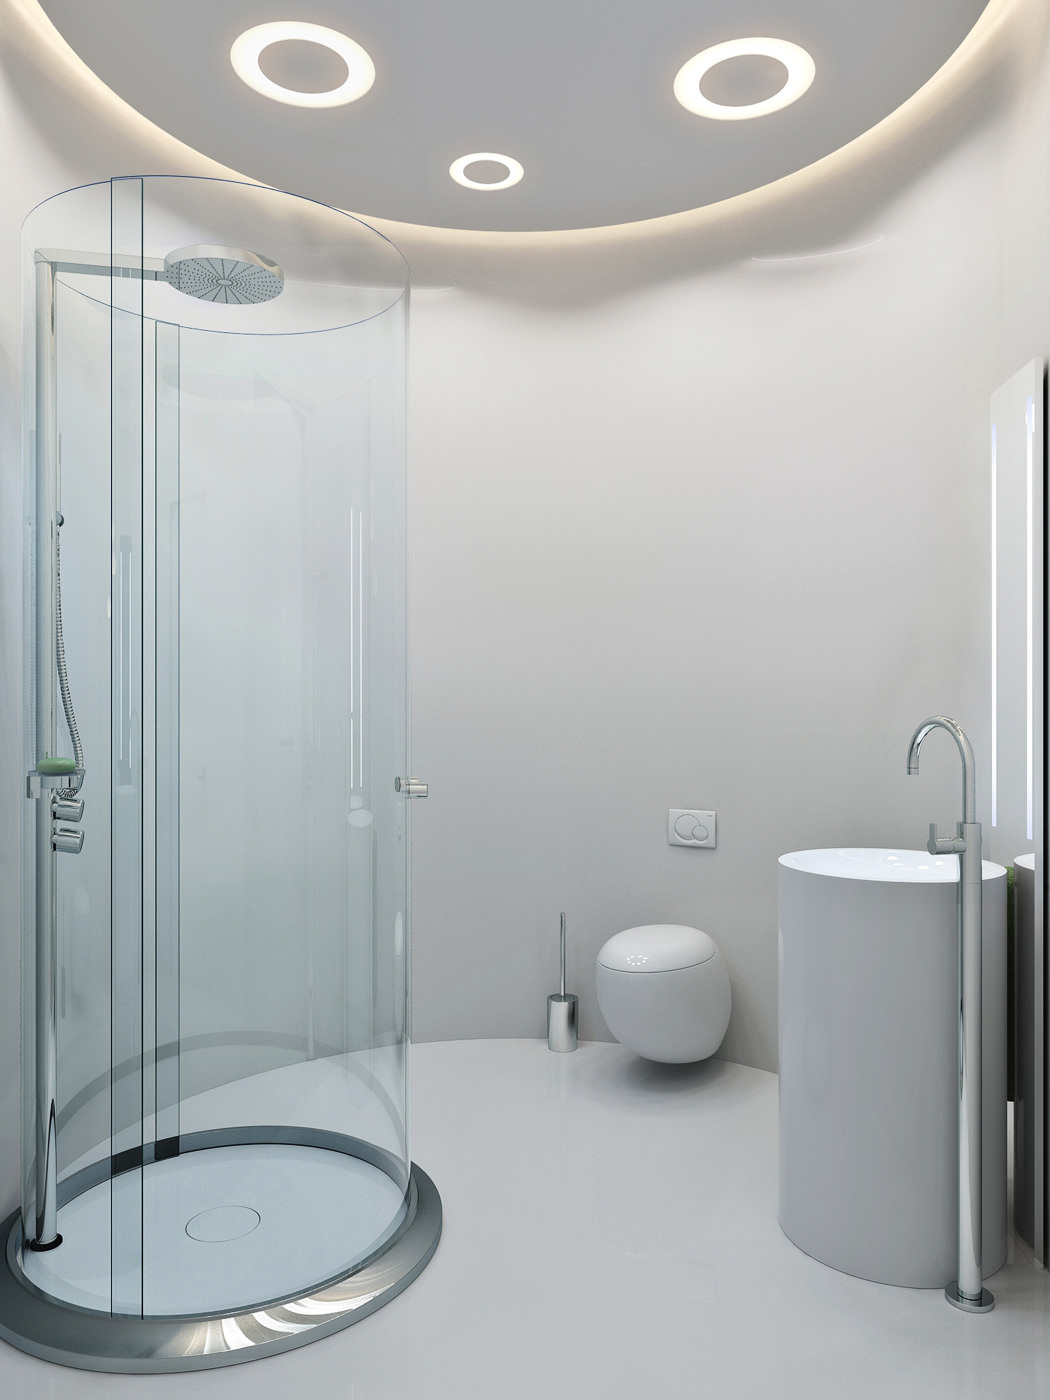 Circular Shower Room Interior Design Ideas